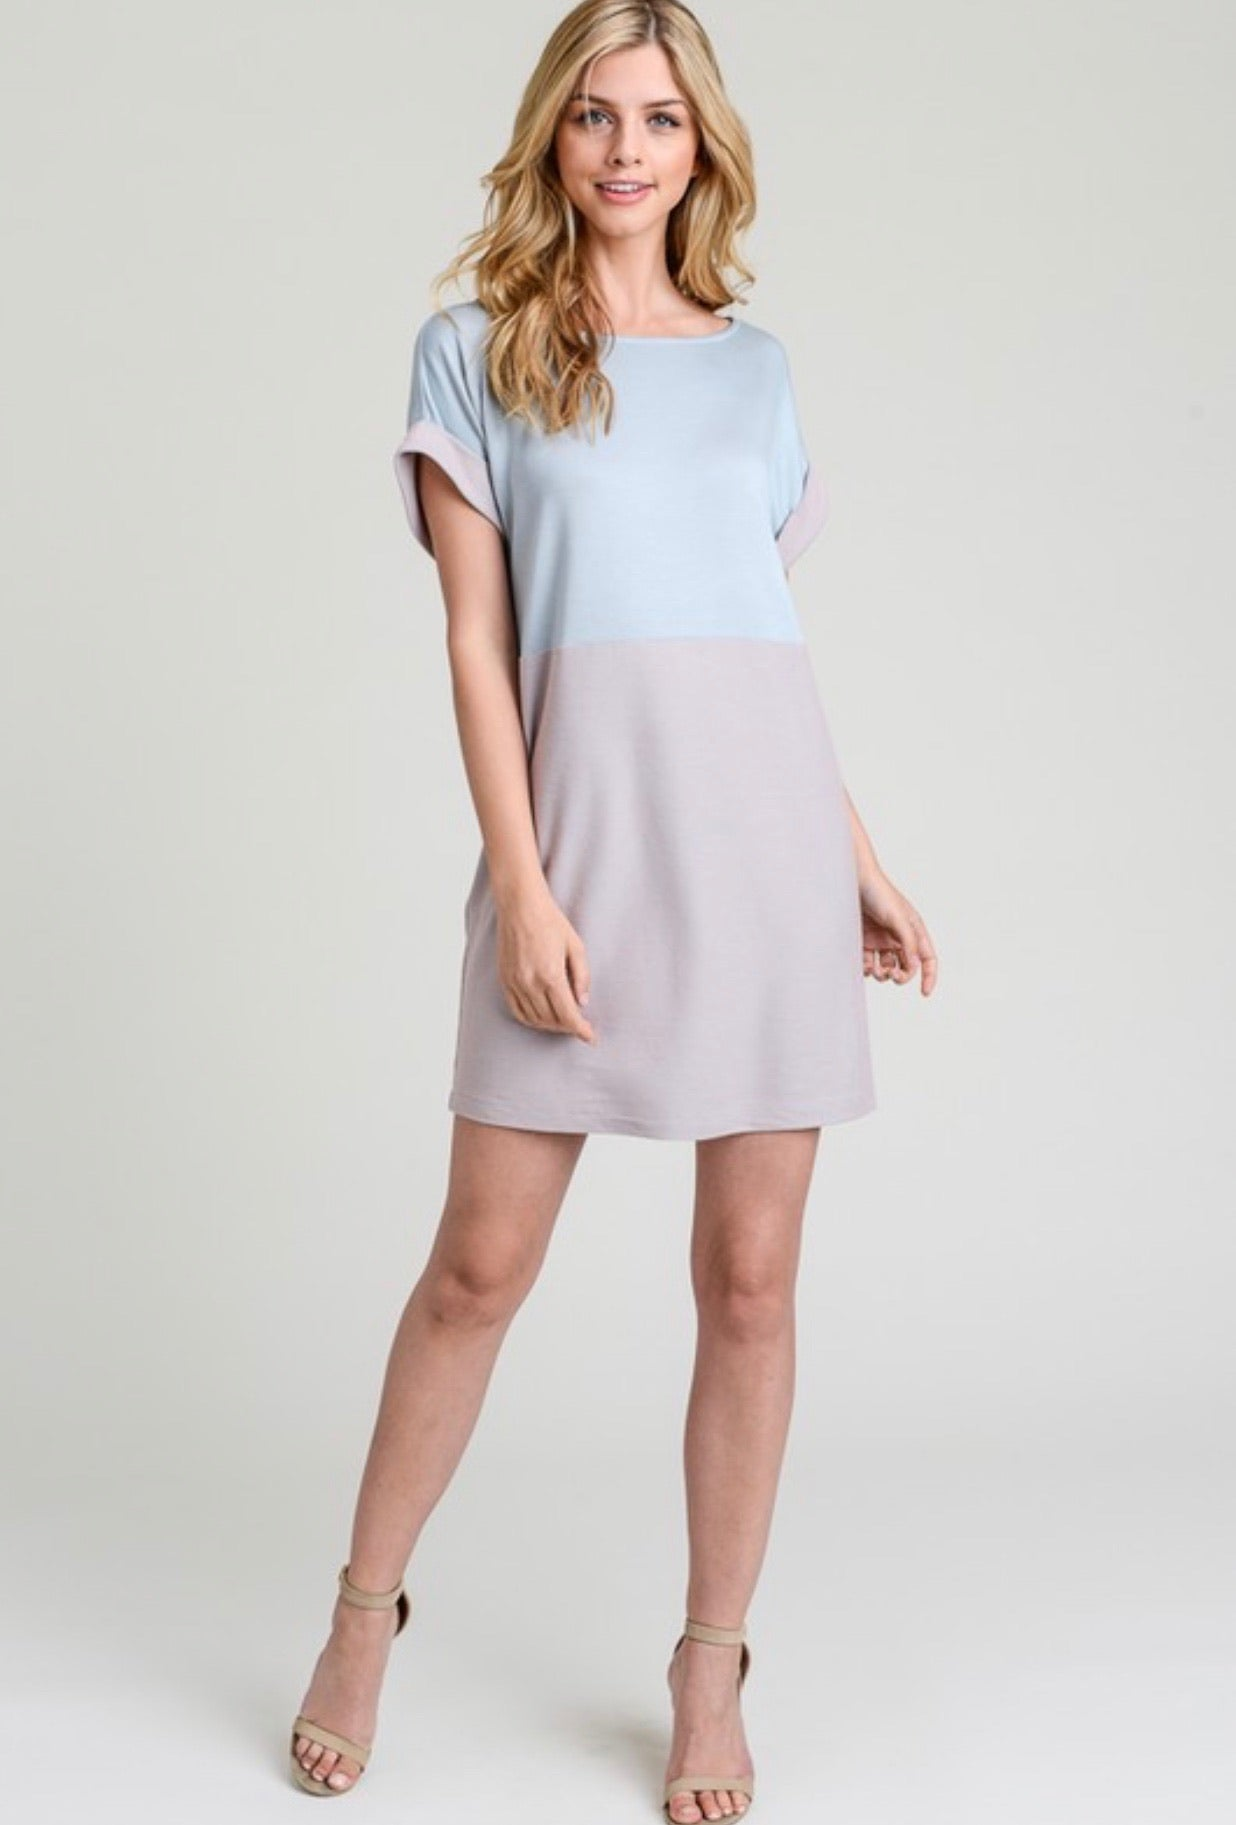 Two Toned T-Shirt Dress